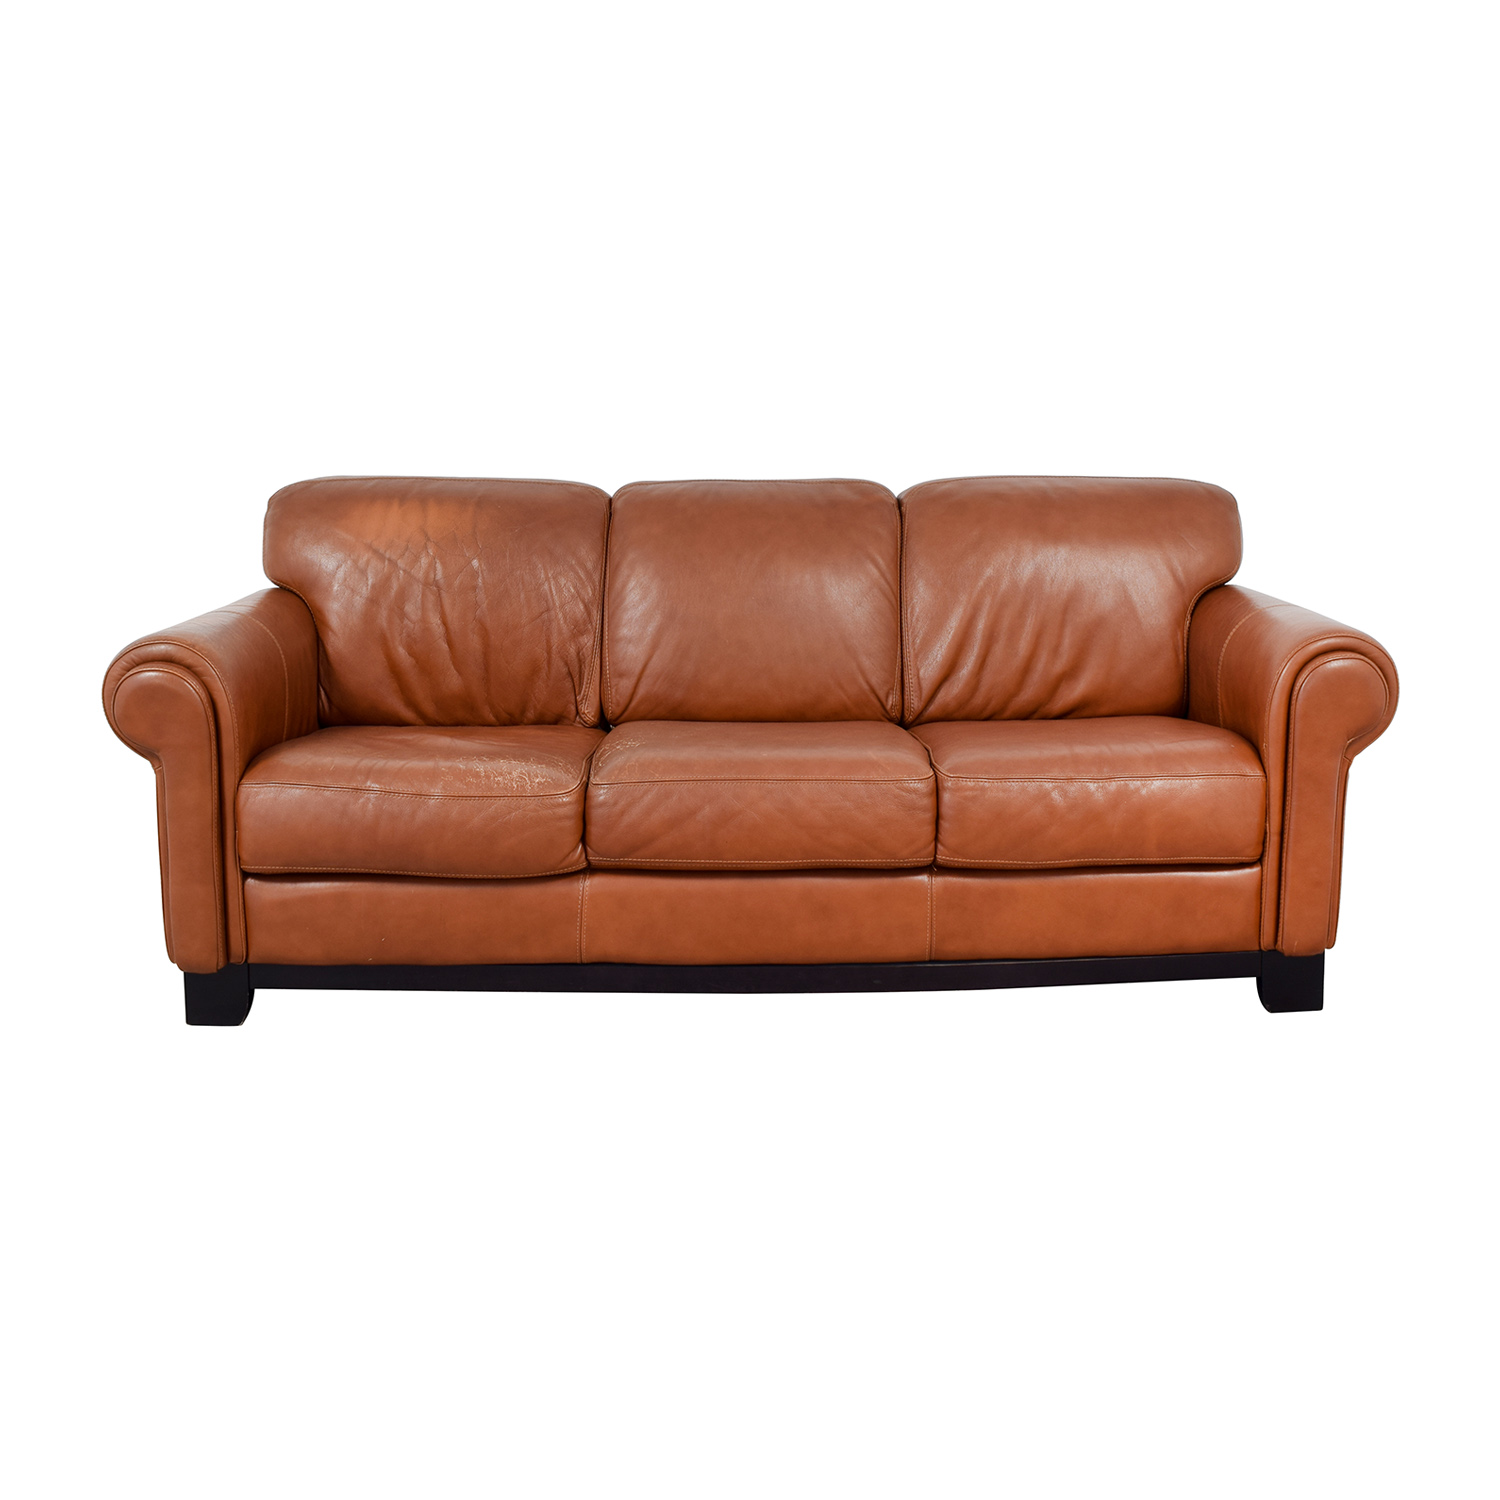 Macy's Cognac Three-Cushion Couch / Classic Sofas